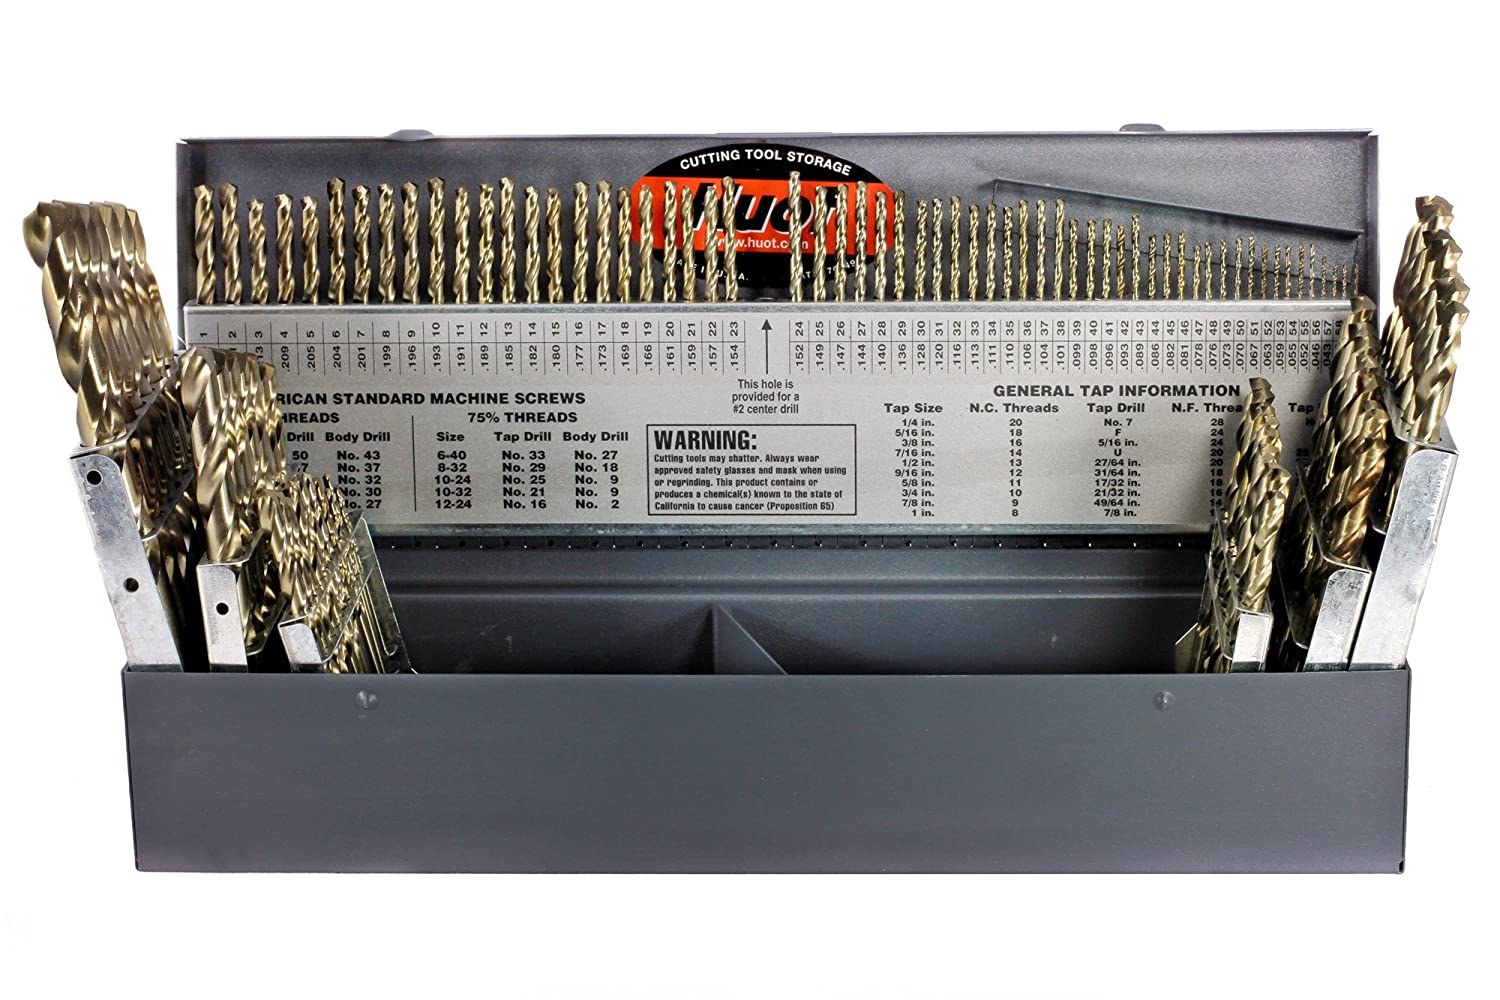 Z Drillco 400N Series Nitro 115 Piece High-Speed Steel Heavy-Duty Jobber Drill Bit Set includes: 1//16-1//2 in 1//64 increments Sizes #1-60 and A Black and Gold Oxide Finish Spiral Flute 135 Degrees Split Point Round Shank